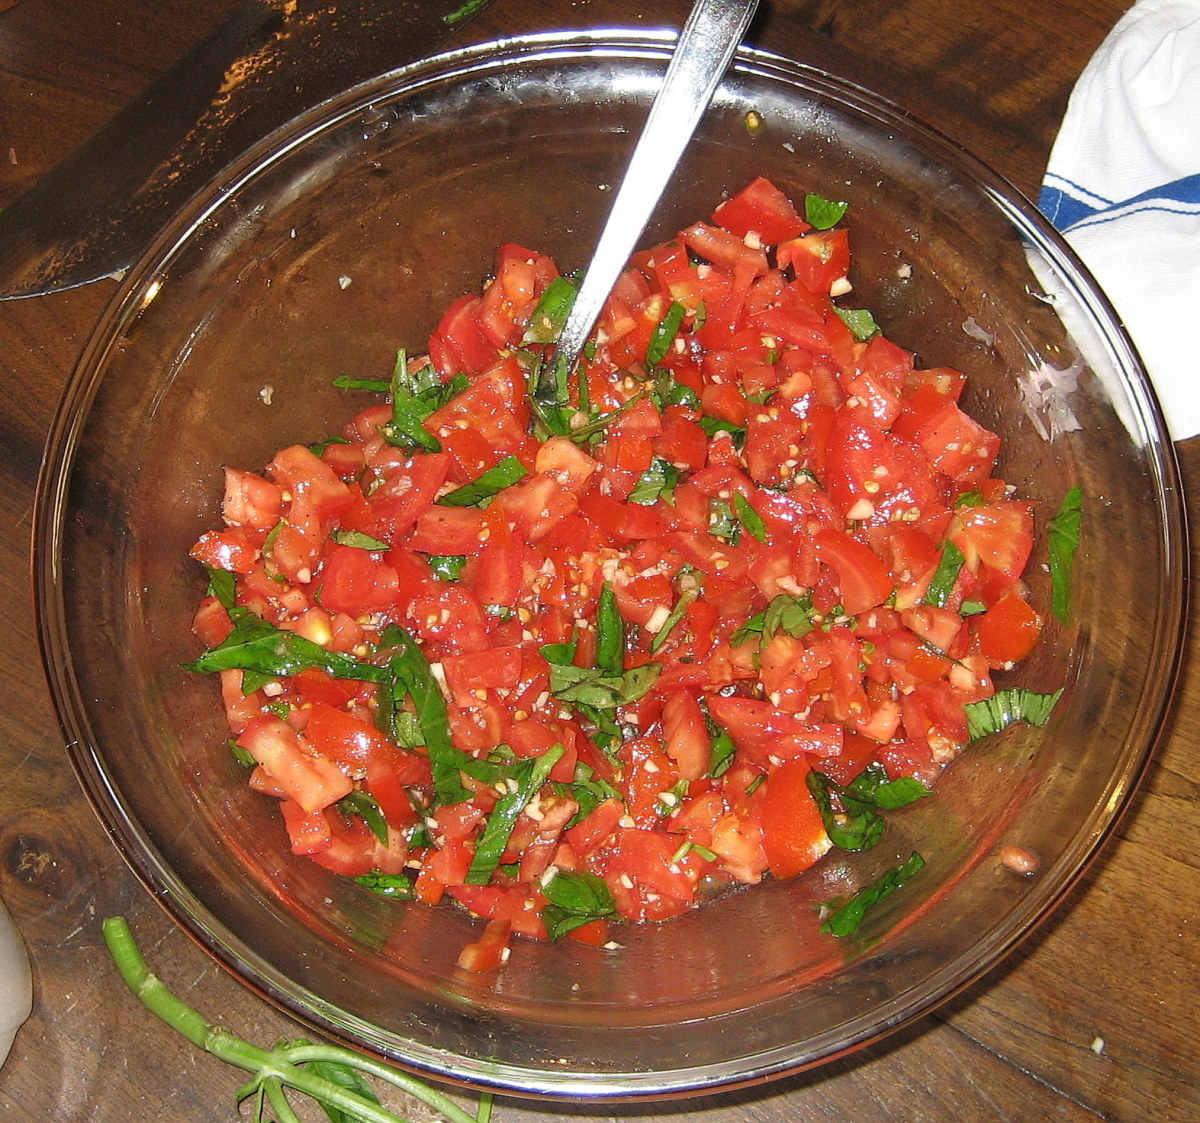 Bruschetta topping